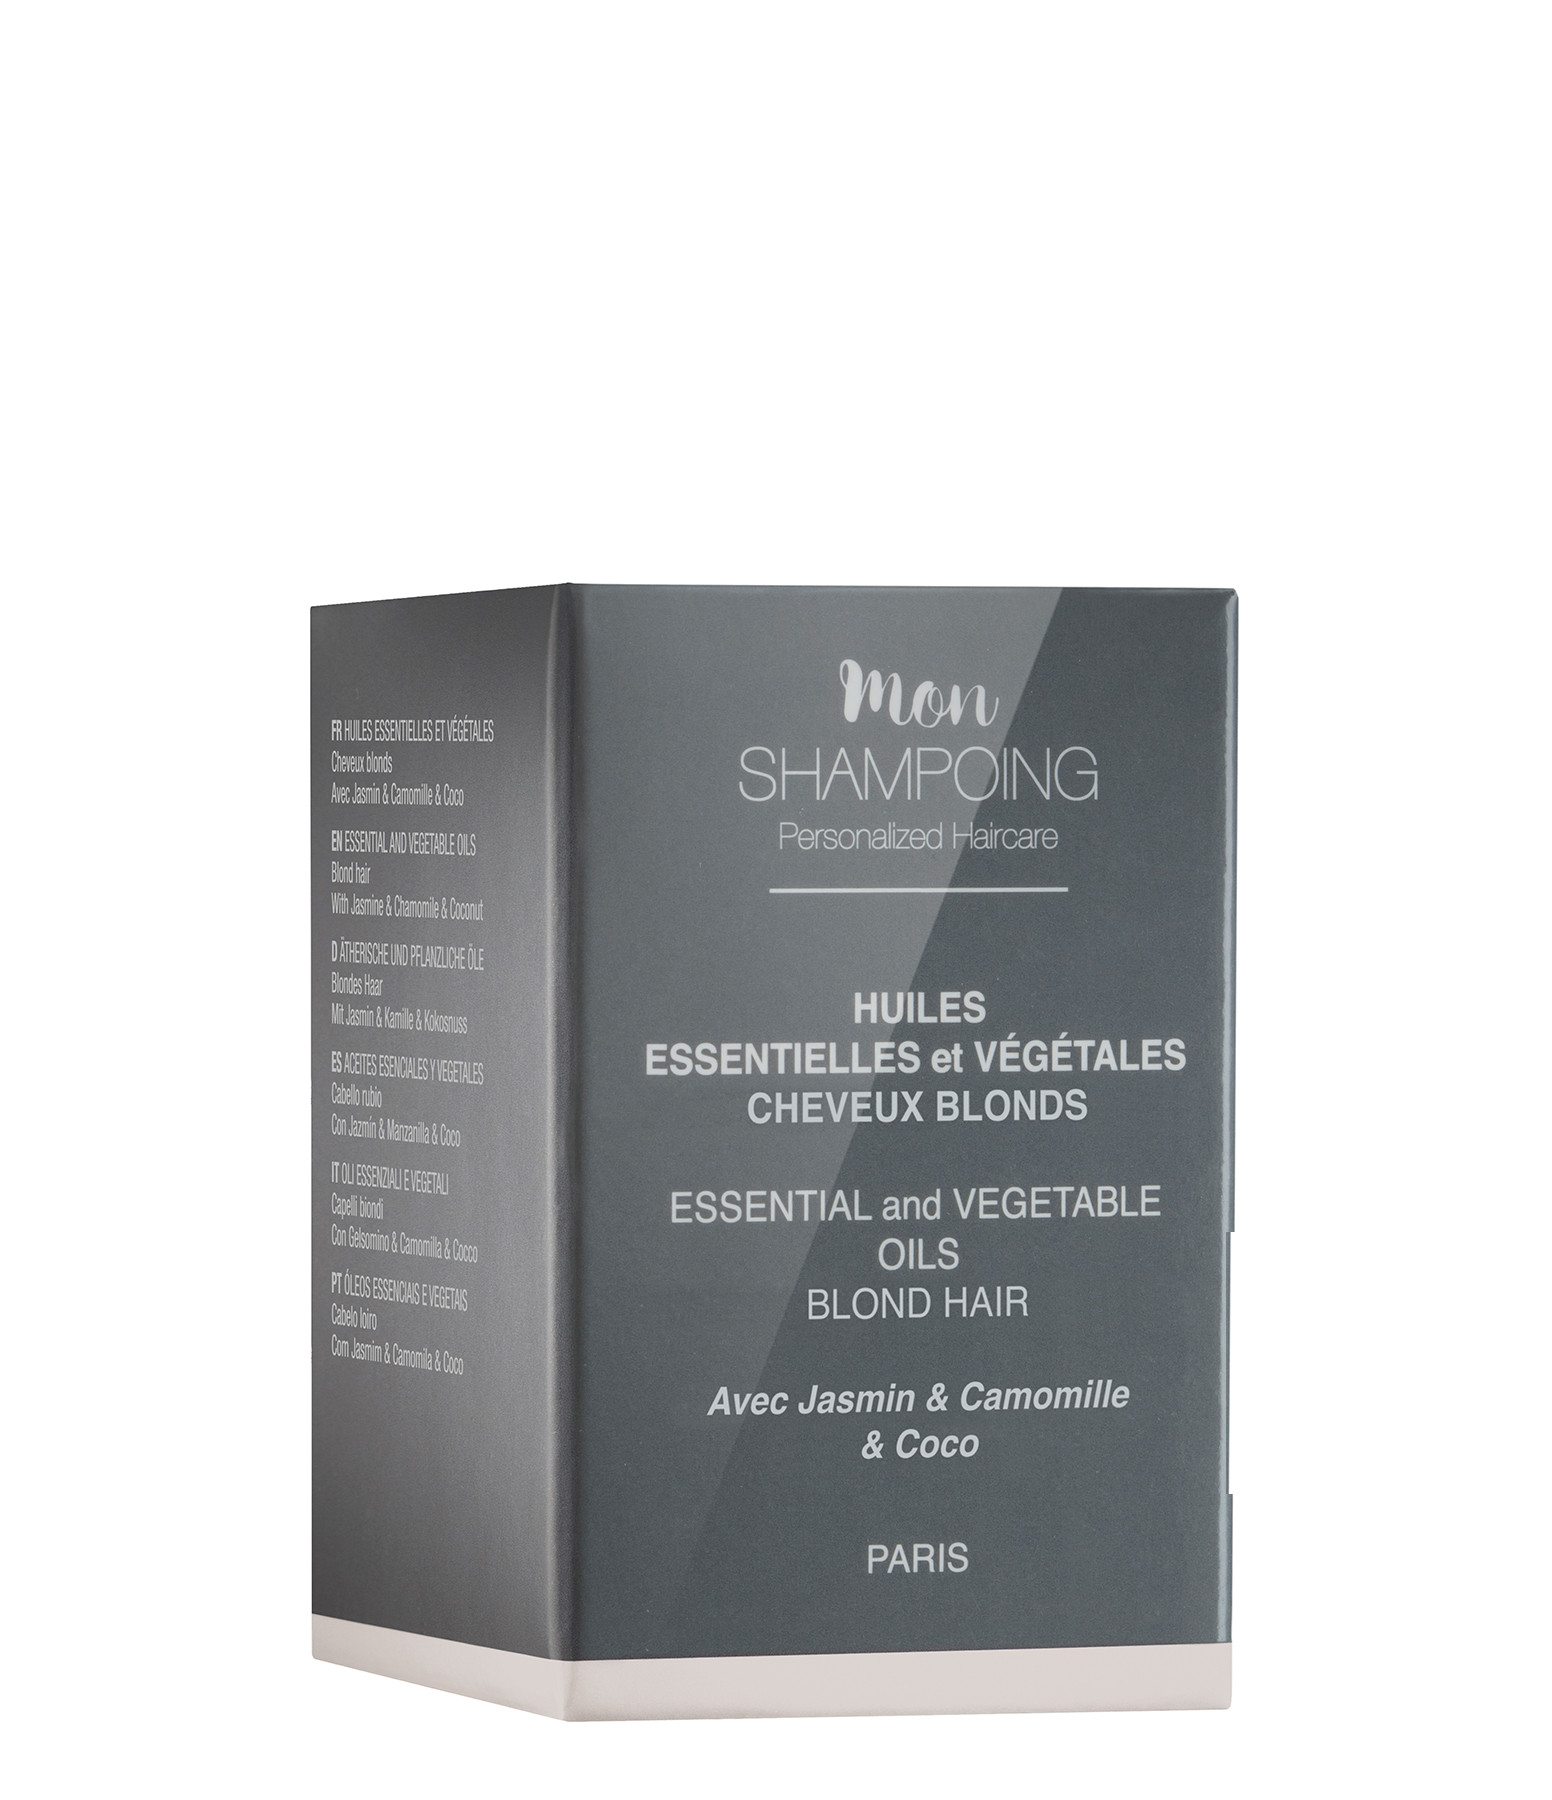 MON SHAMPOING - Booster Huiles Essentielles Cheveux Blonds 5ml